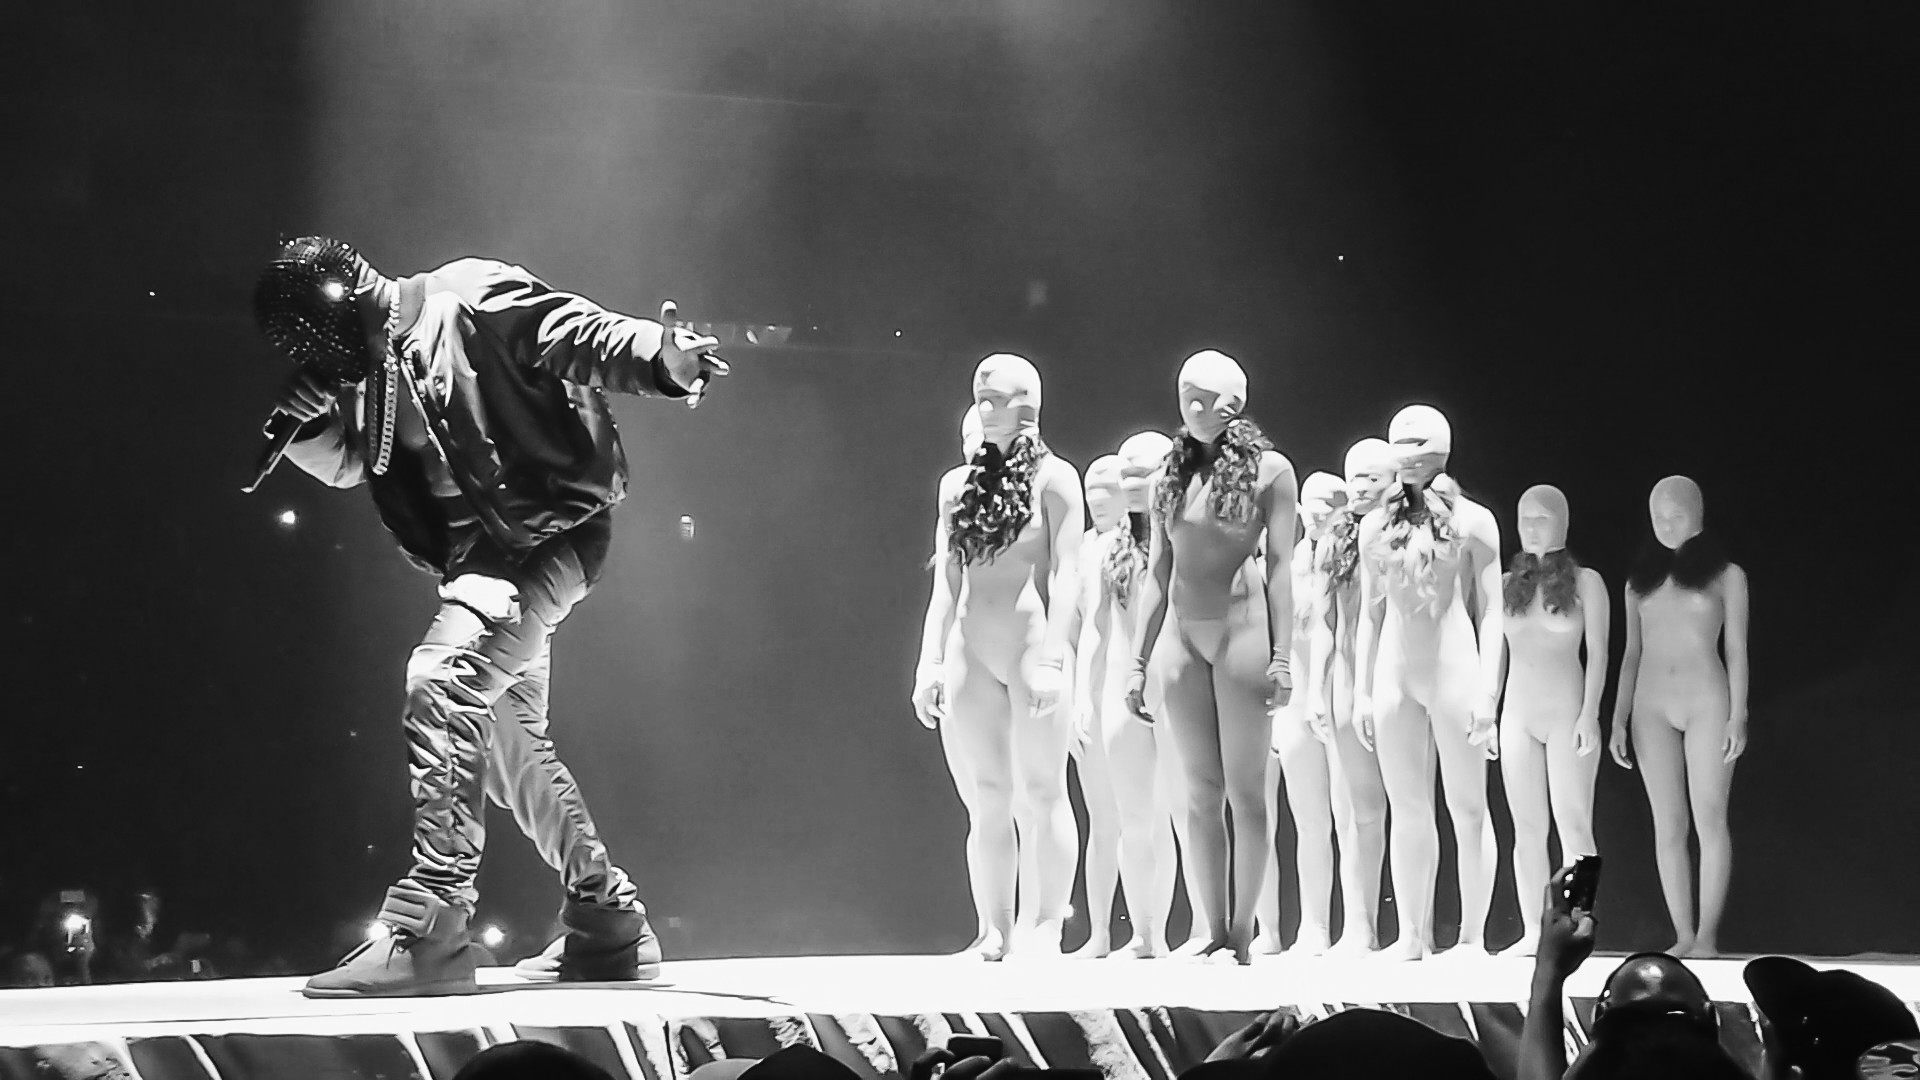 … free kanye west power wallpapers for android as wallpaper hd …